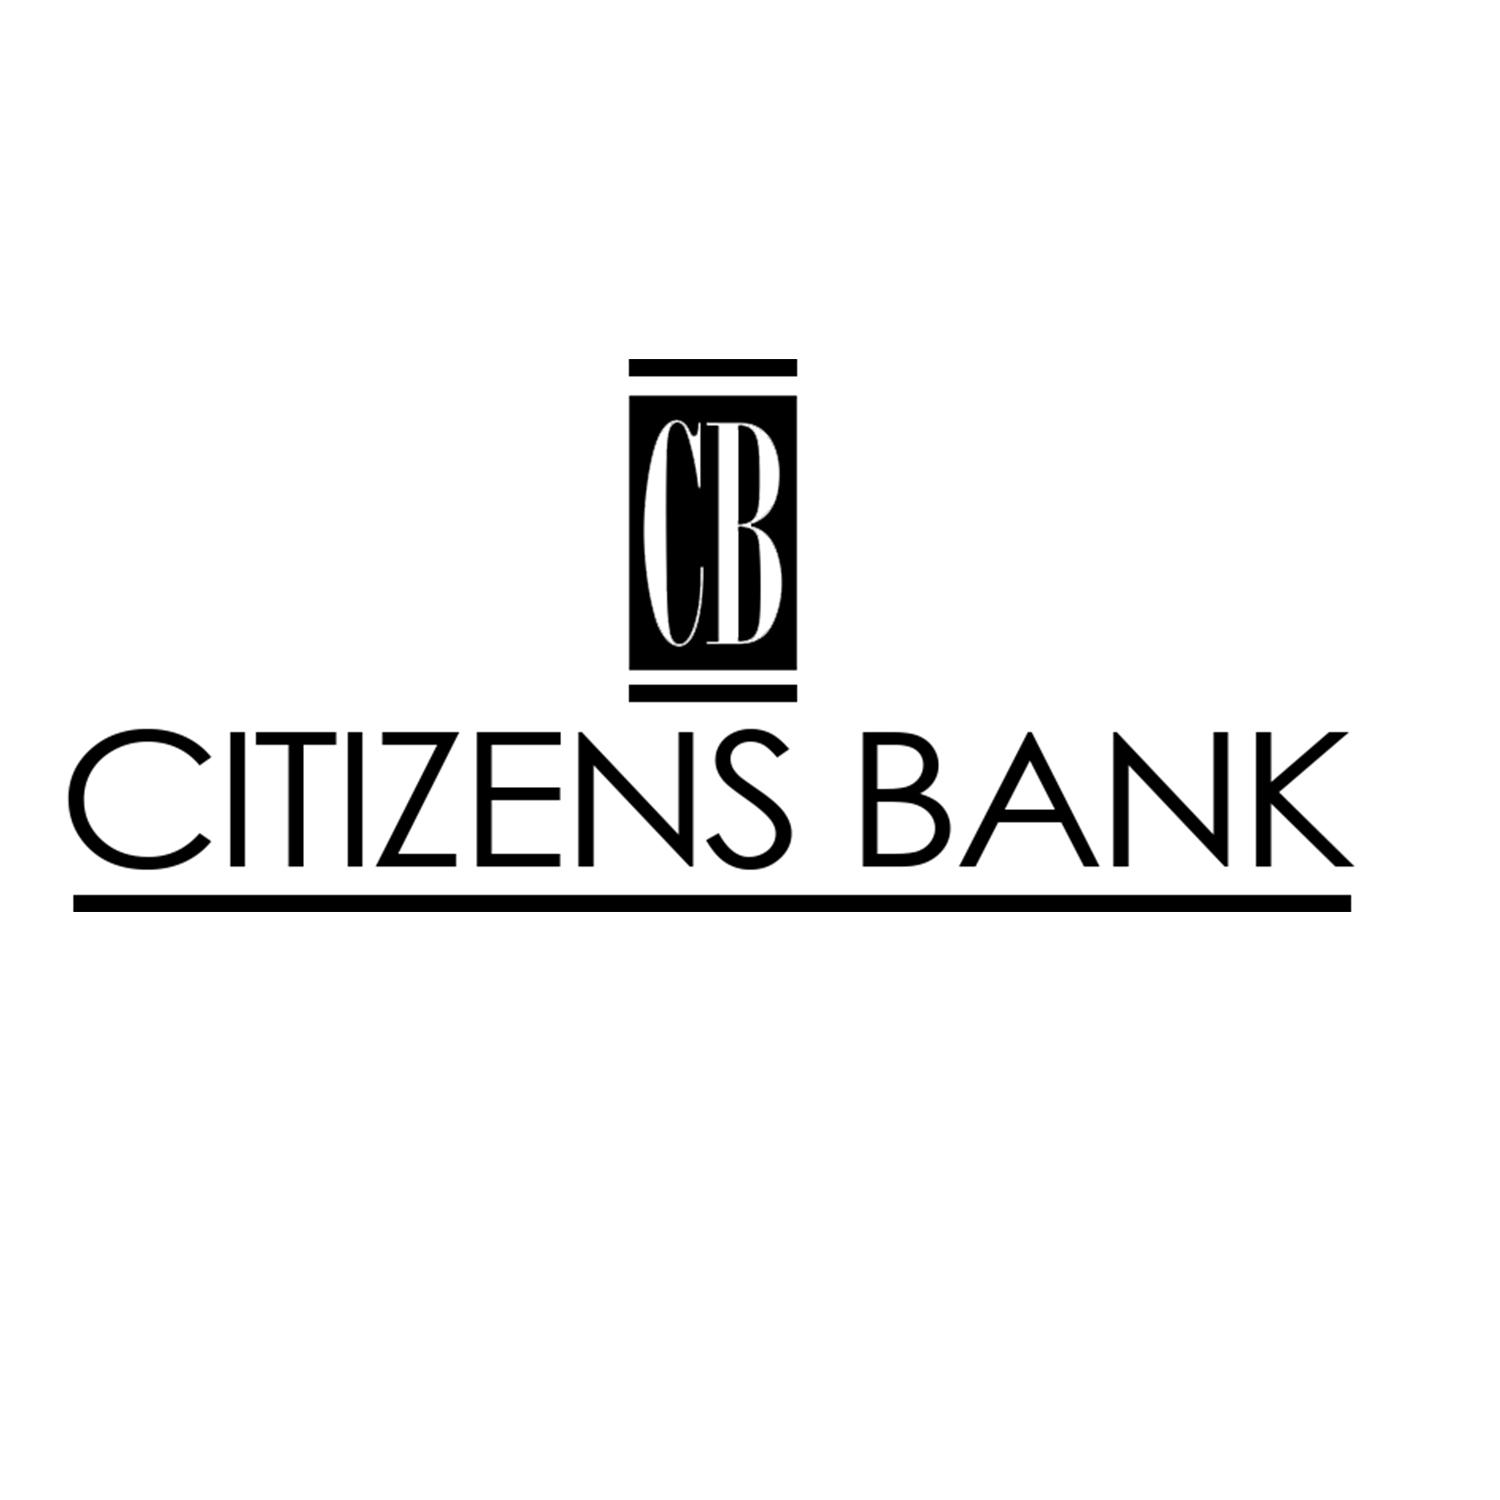 Citizens Bank of Swainsboro and Laurens Co.